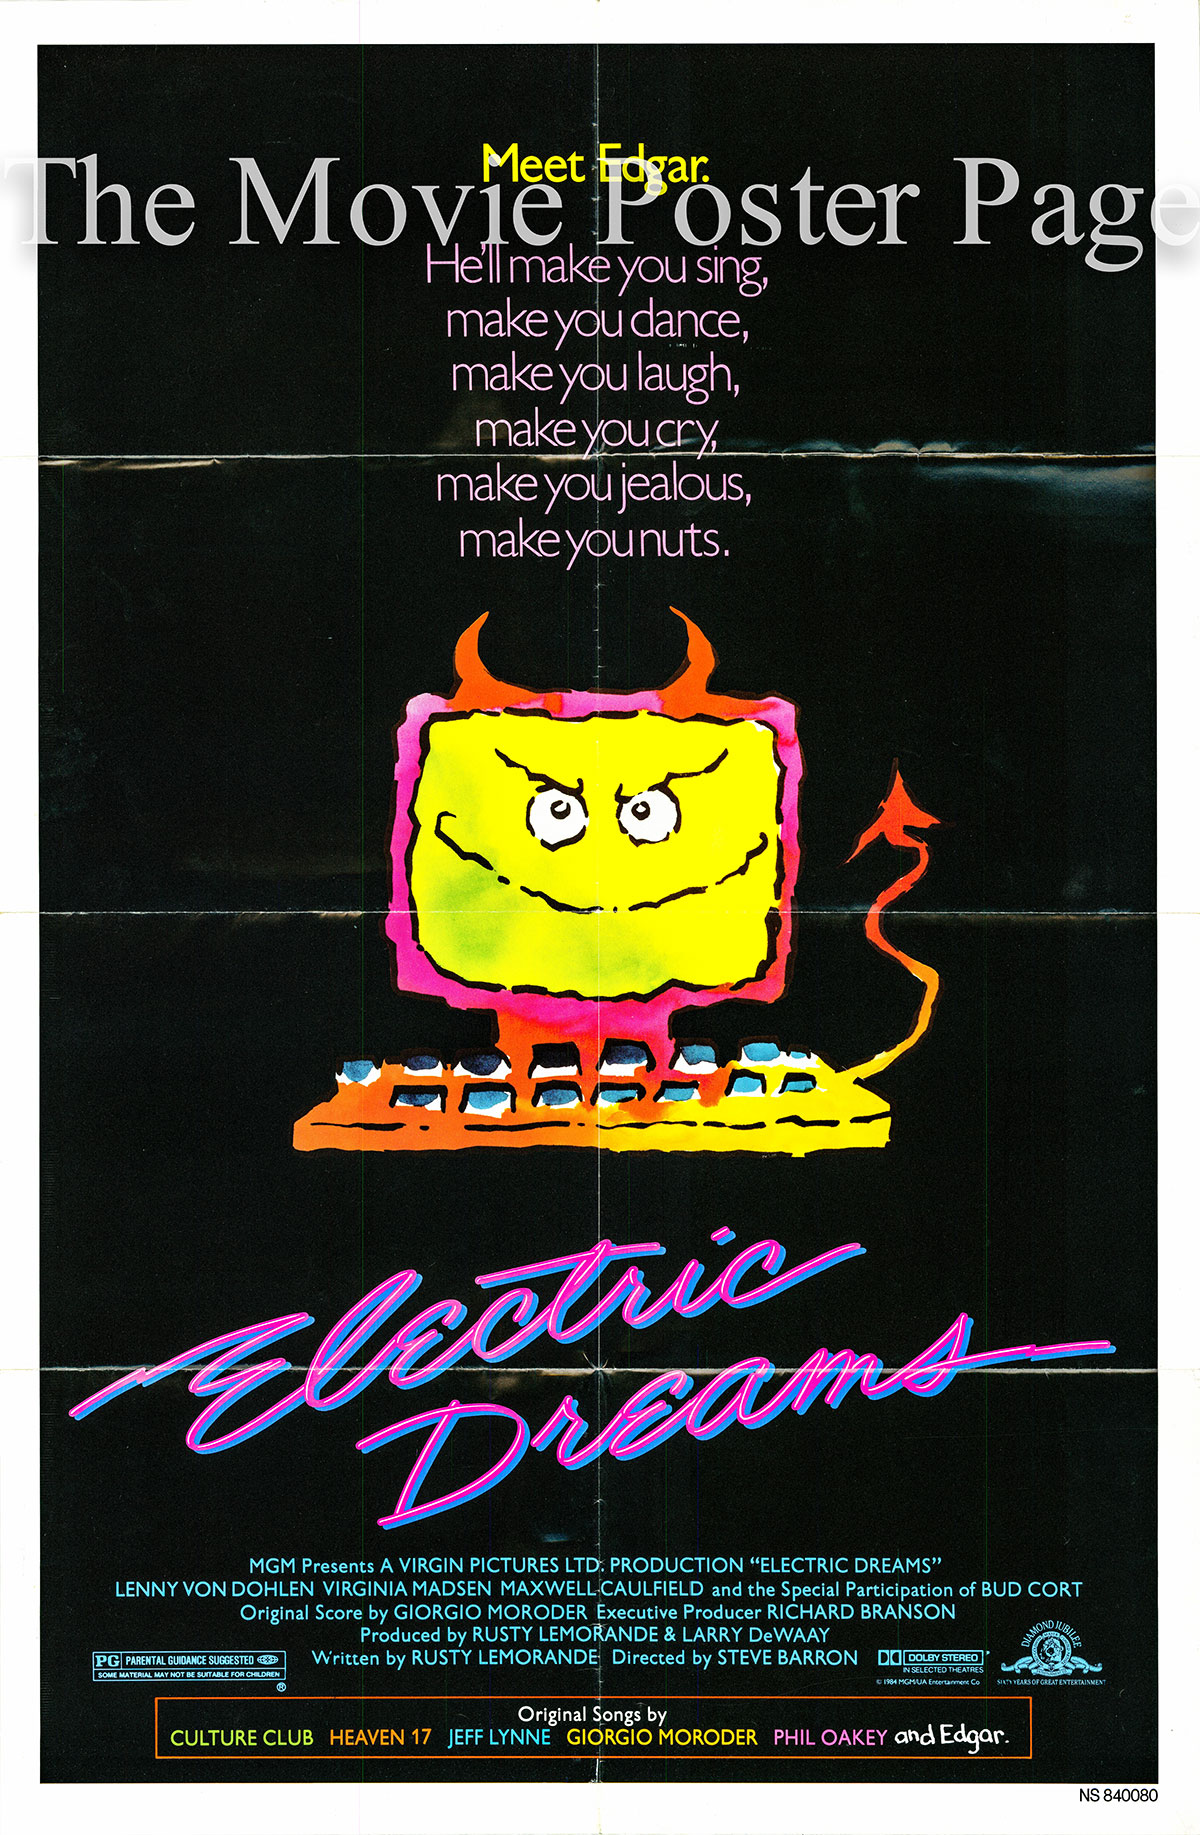 Pictured is an US one-sheet promotional poster for the 1984 Steve Barron film Electric Dreams starring Lenny von Dohlen.